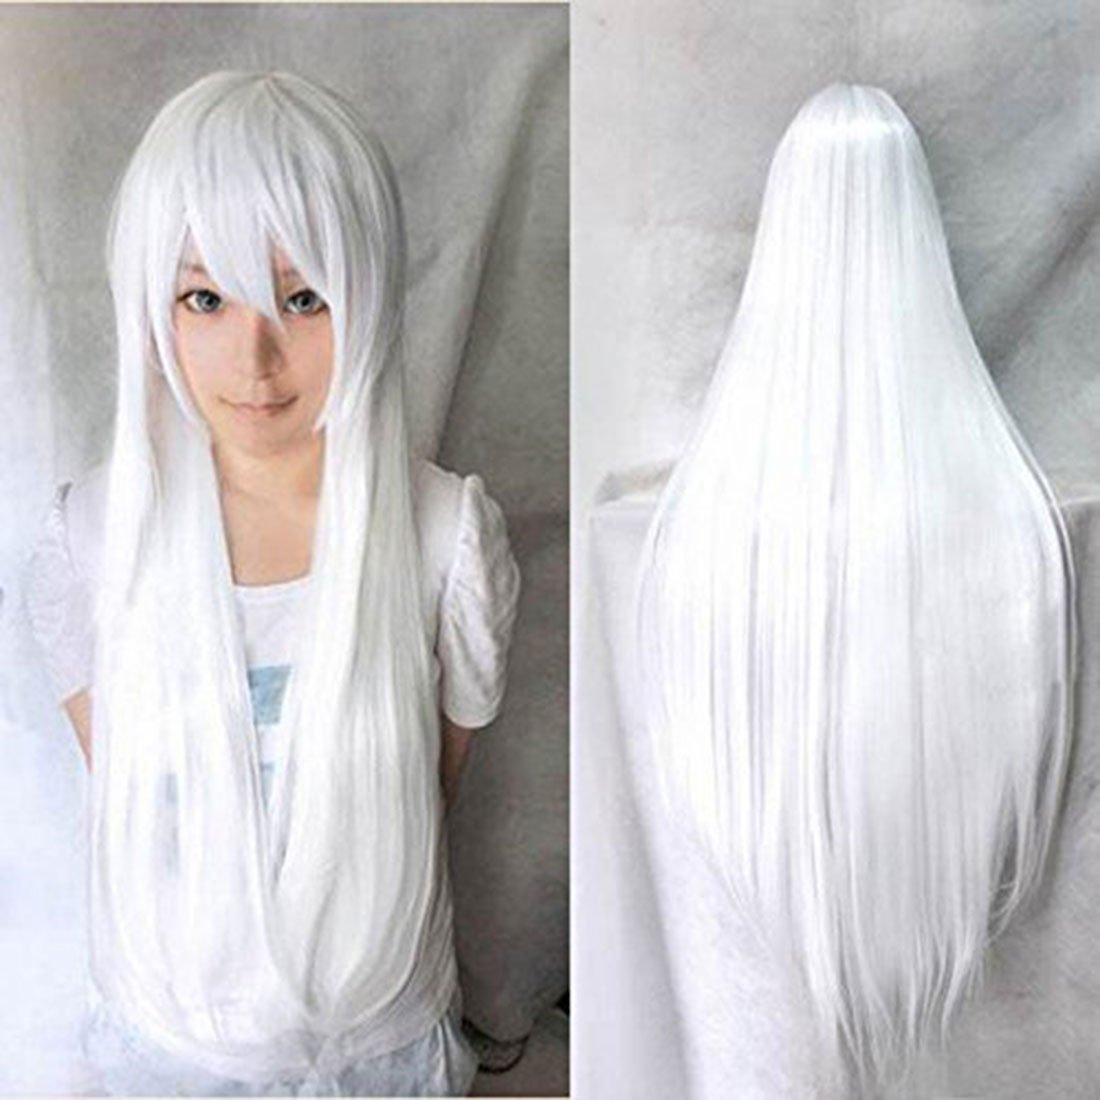 5119963d3 Amazon.com: Anogol Vocaloid 32inches Long Straight Wigs Lolita White  Cosplay Wig: Beauty